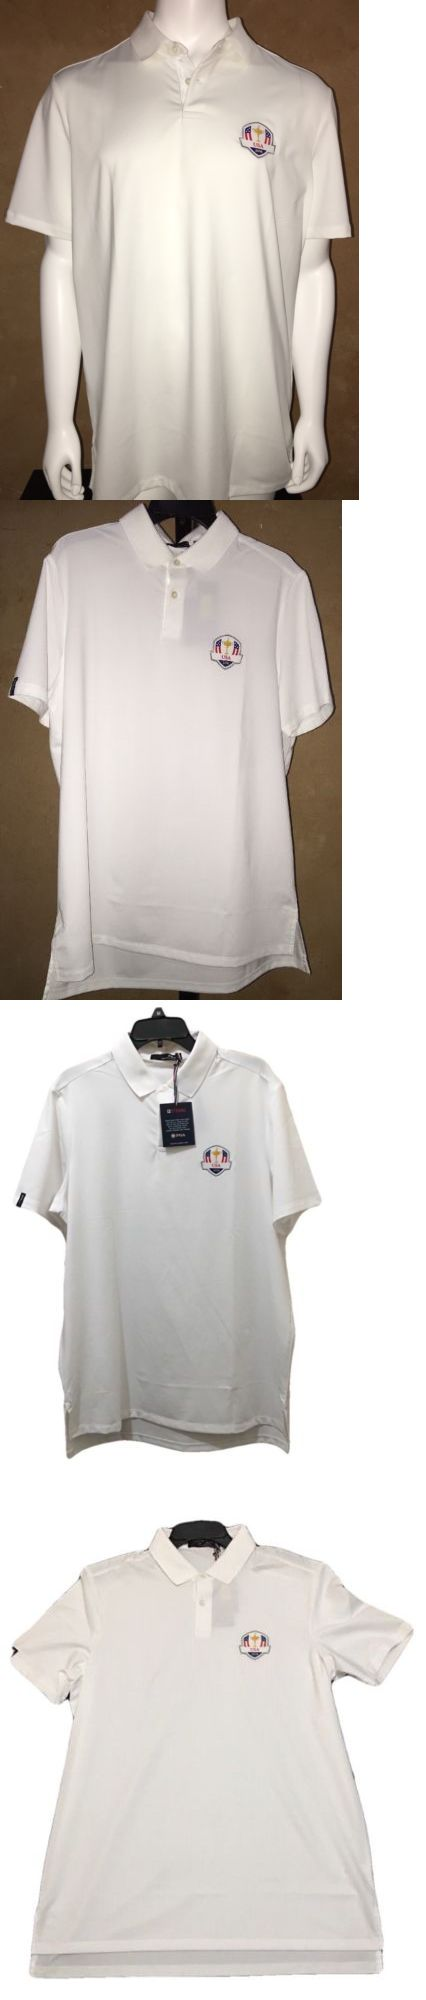 Shirts Tops and Sweaters 181138: Nwt 2016 Ryder Cup Team Polo Ralph Lauren Rlx Men Shirt Size Large Color White -> BUY IT NOW ONLY: $39.0 on eBay!